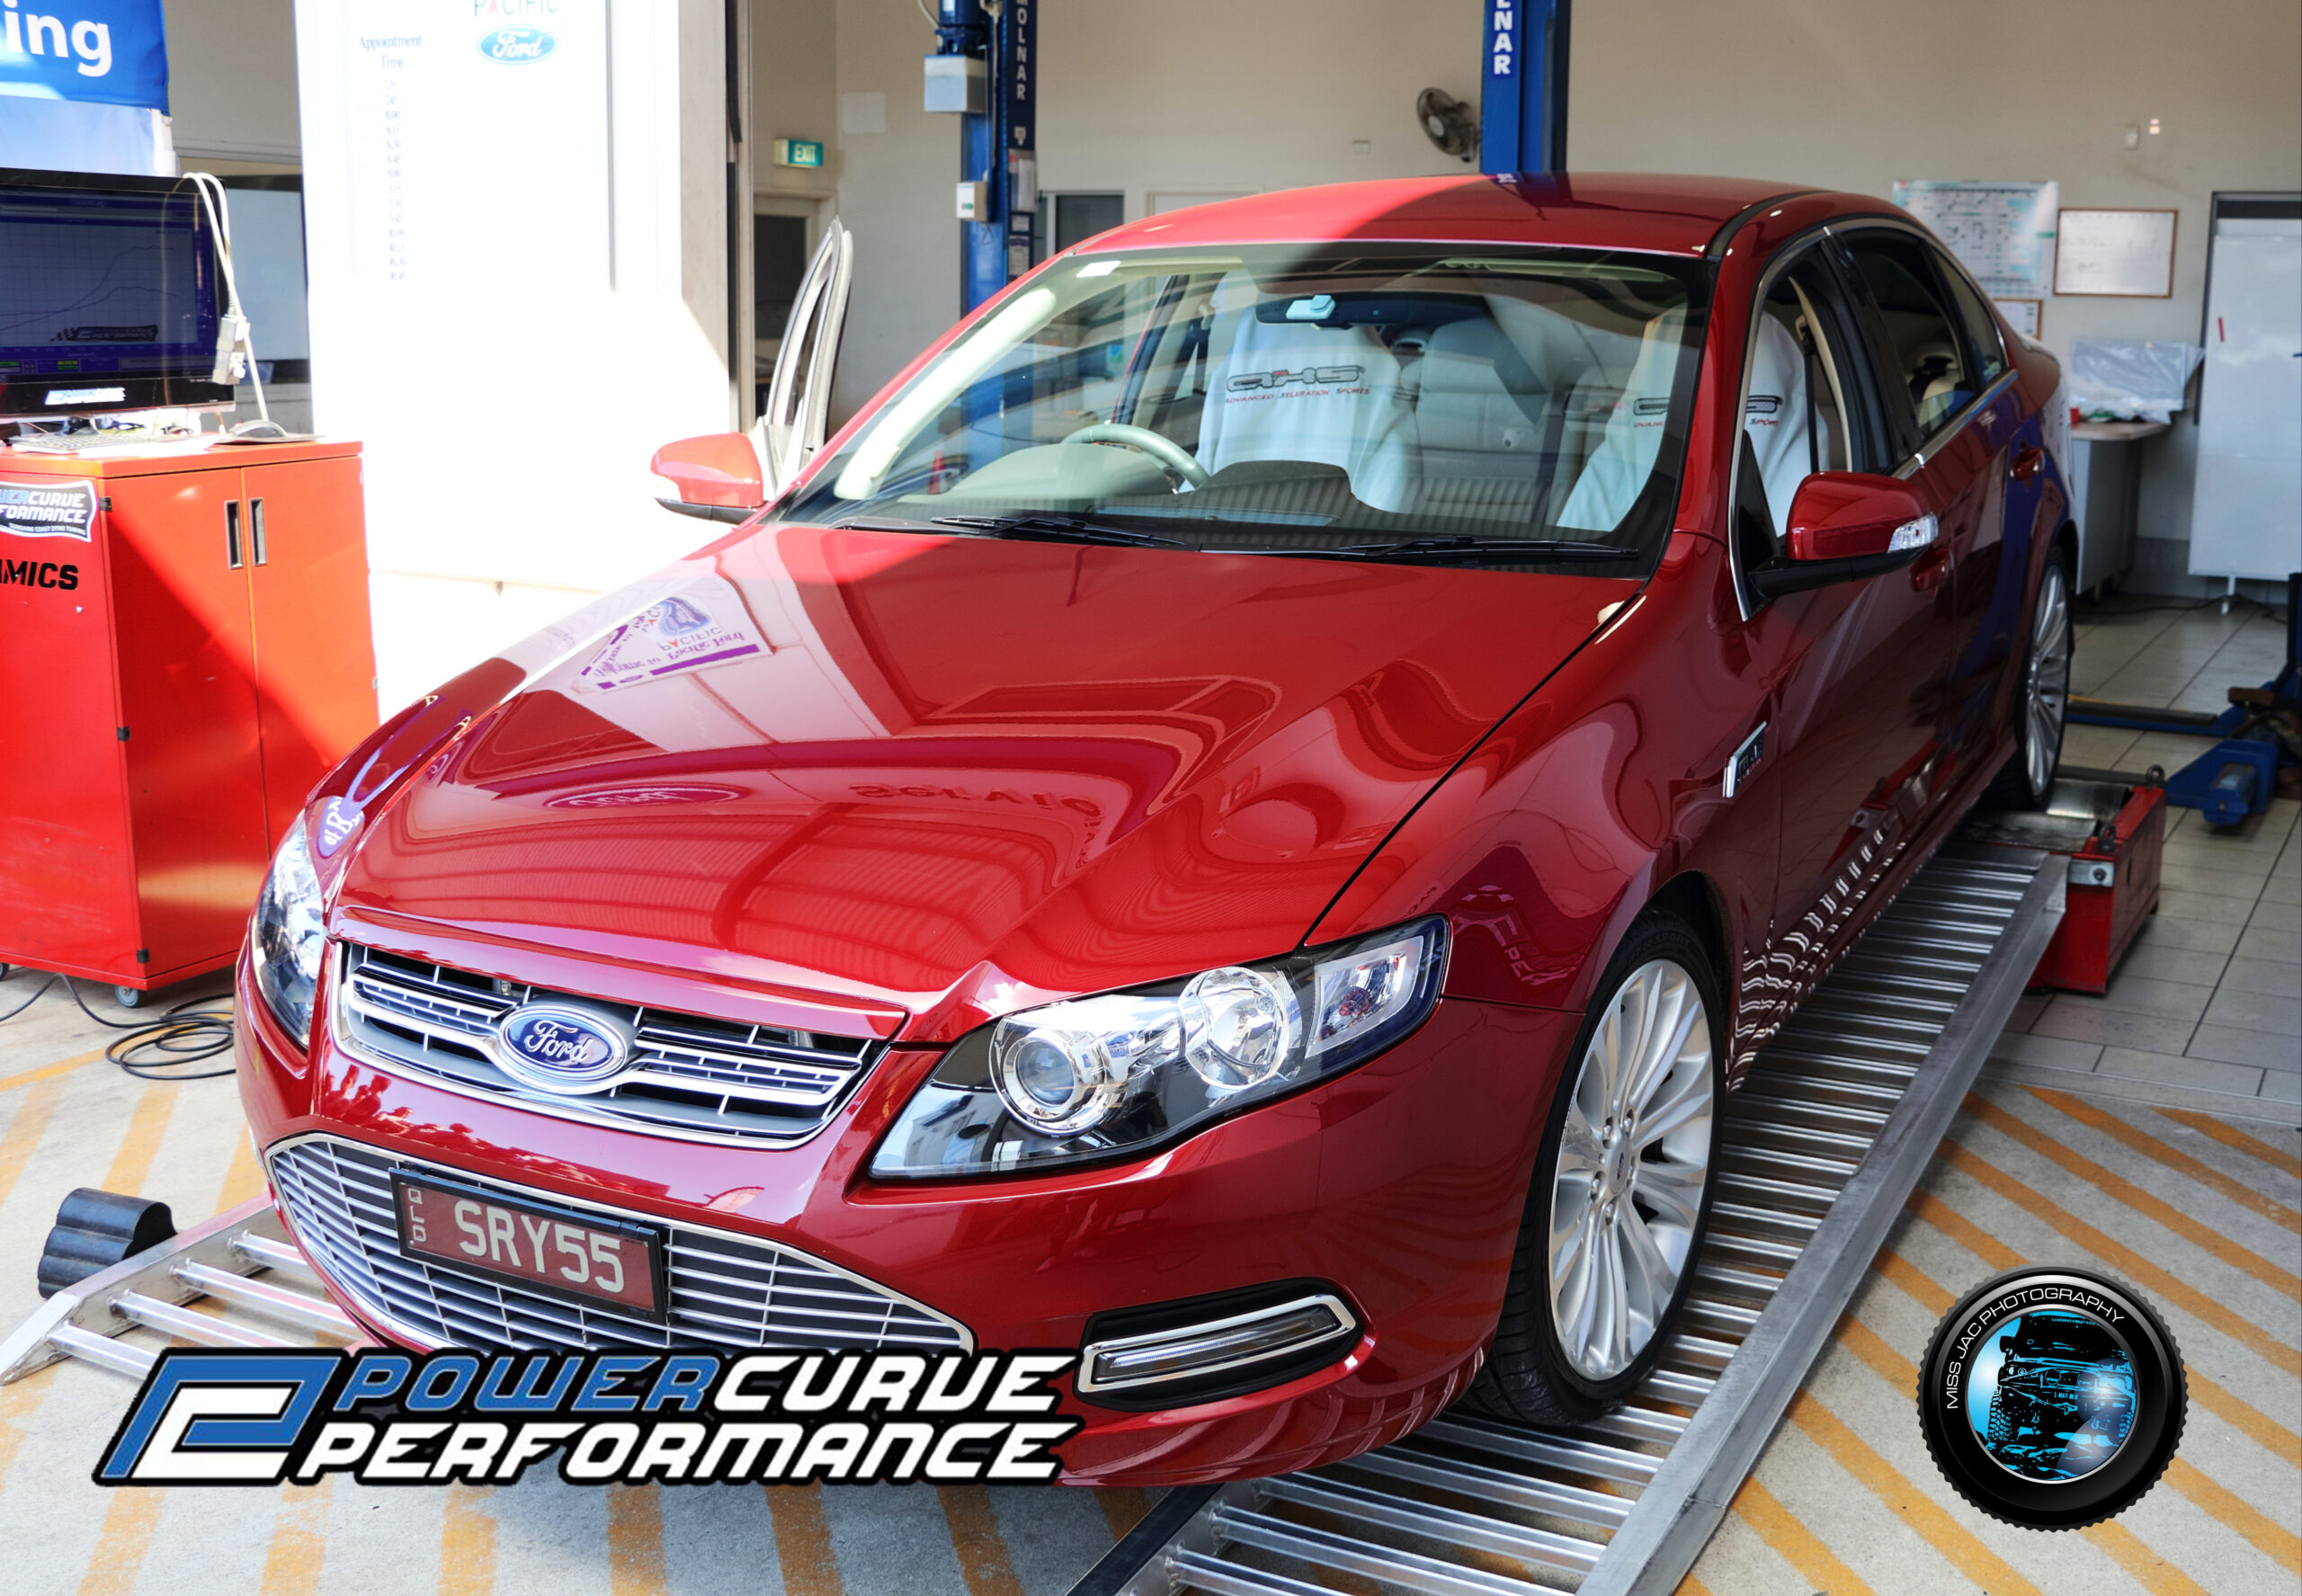 pacific ford dyno day 2017 sunshine coast dyno tuning power curve performance Nambour mechanical 4wd upgrades modification turbo upgrades injector upgrades duramax conversions nissan tune ECU Tune Diesel Tune